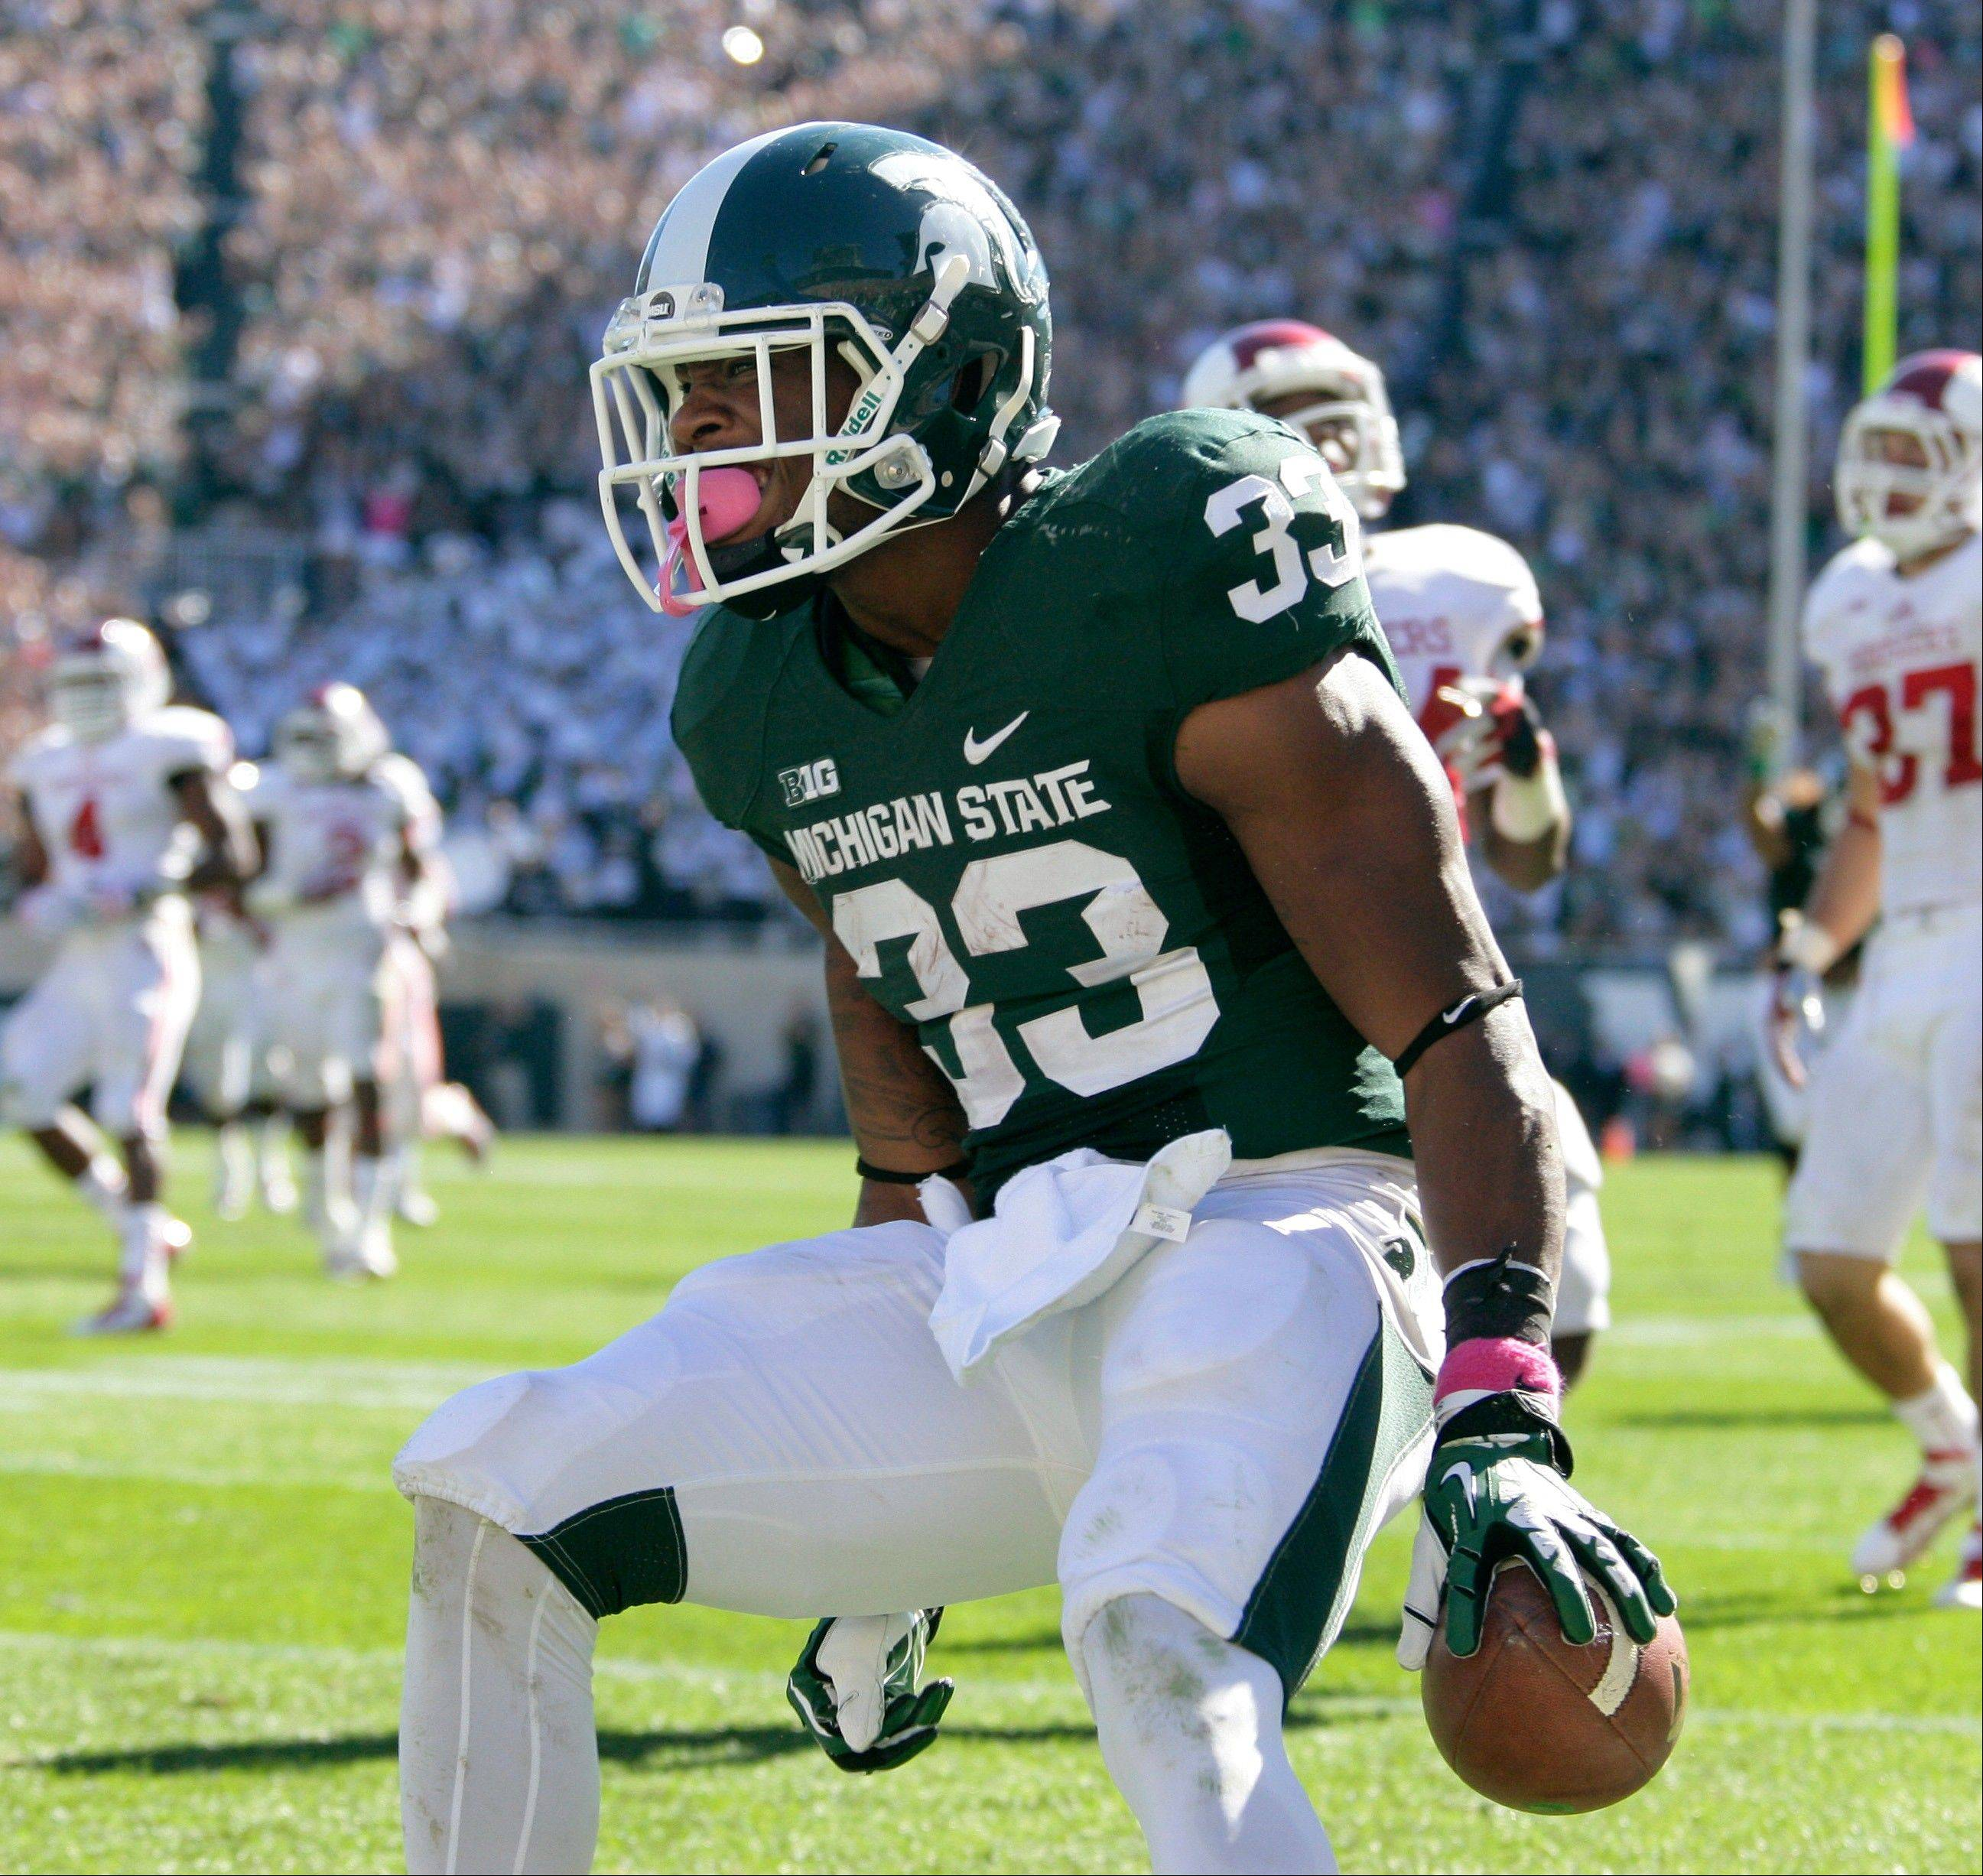 Michigan State's Jeremy Langford celebrates his 32-yard touchdown during the third quarter of Saturday's game against Indiana.